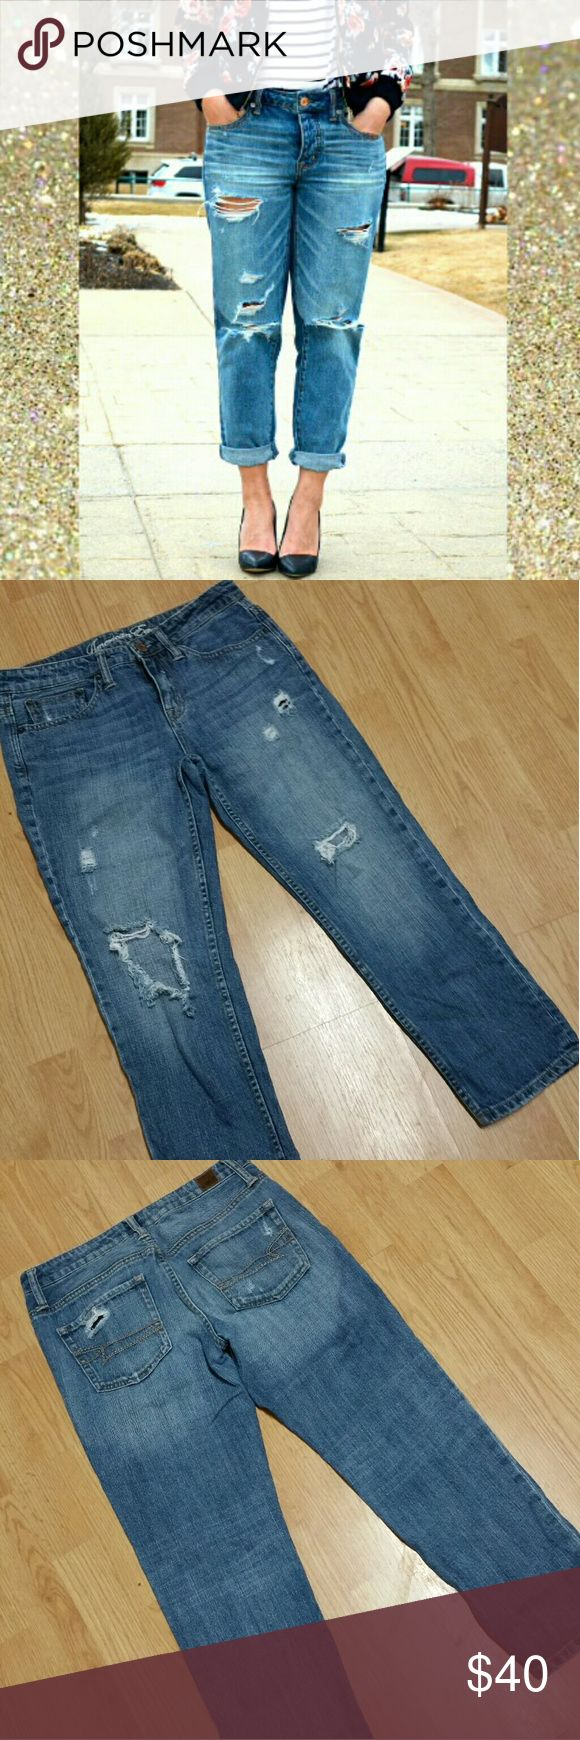 AEO Cropped Distressed Jeans Gently worn, super adorable and closer to a boyfriend fit so they run a little big. Says regular but close to 25inc. inseam approx. can get exact measurements if needed. American Eagle Outfitters Jeans Ankle & Cropped